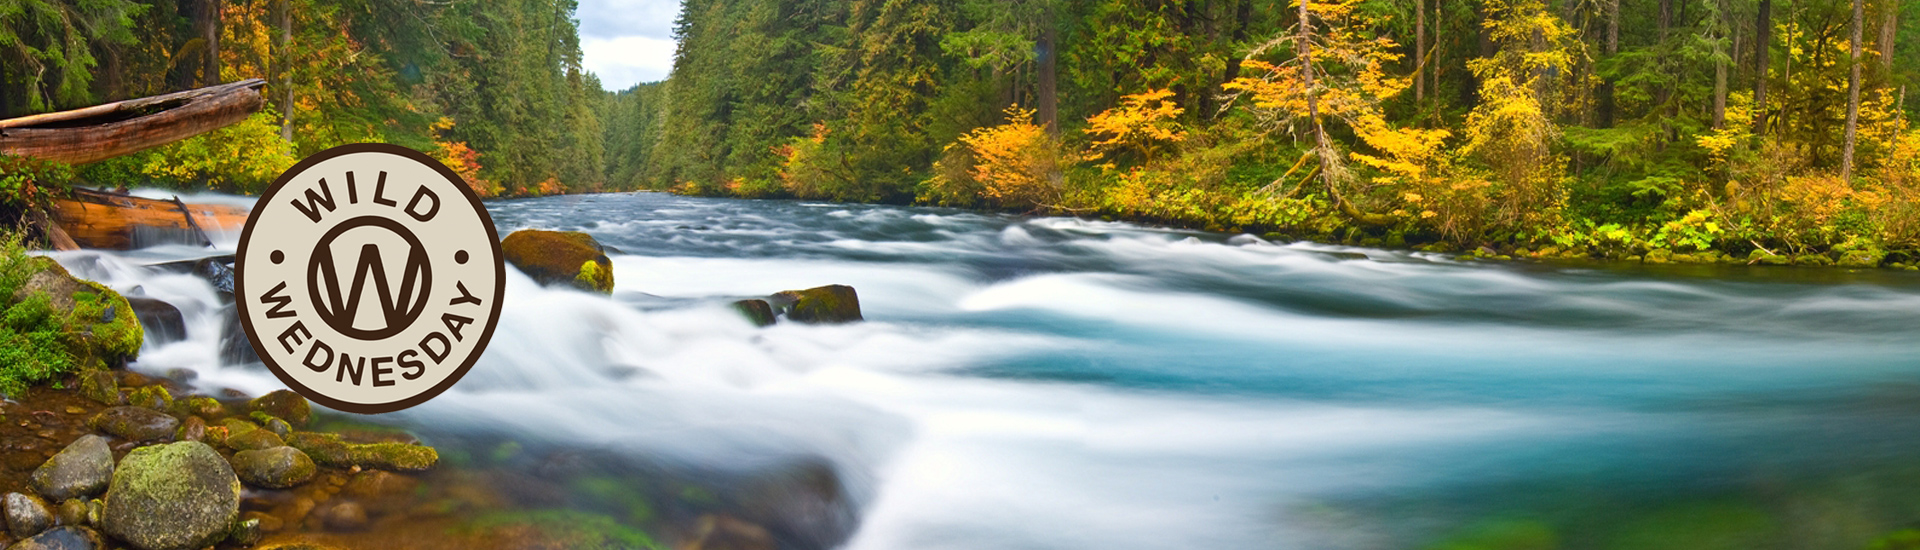 Oregon Wild Wednesday with Tim Palmer (McKenzie River by Joel Zak)